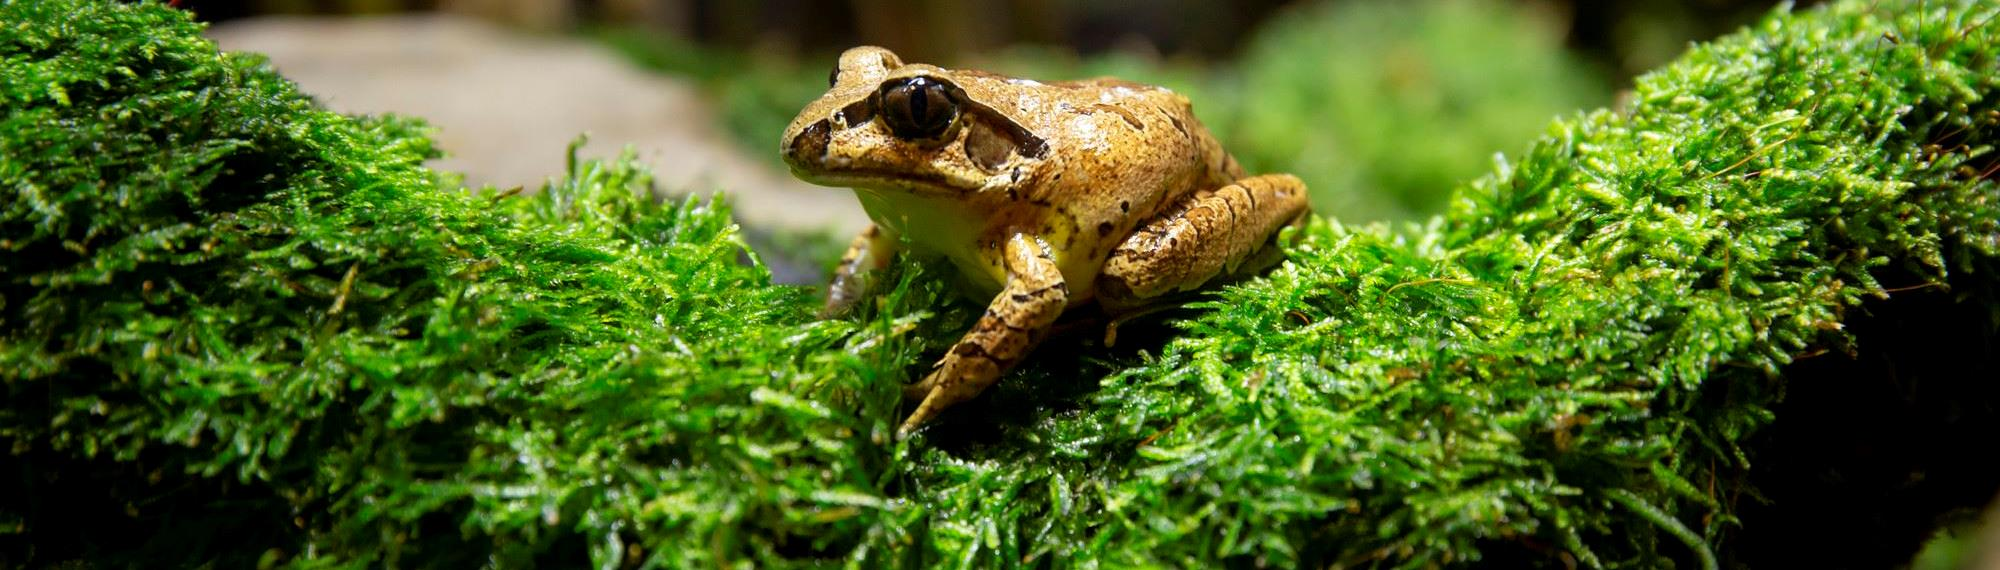 Stuttering Frog sitting on green moss. Frog is a golden olive-green with a black stripe through its eye.